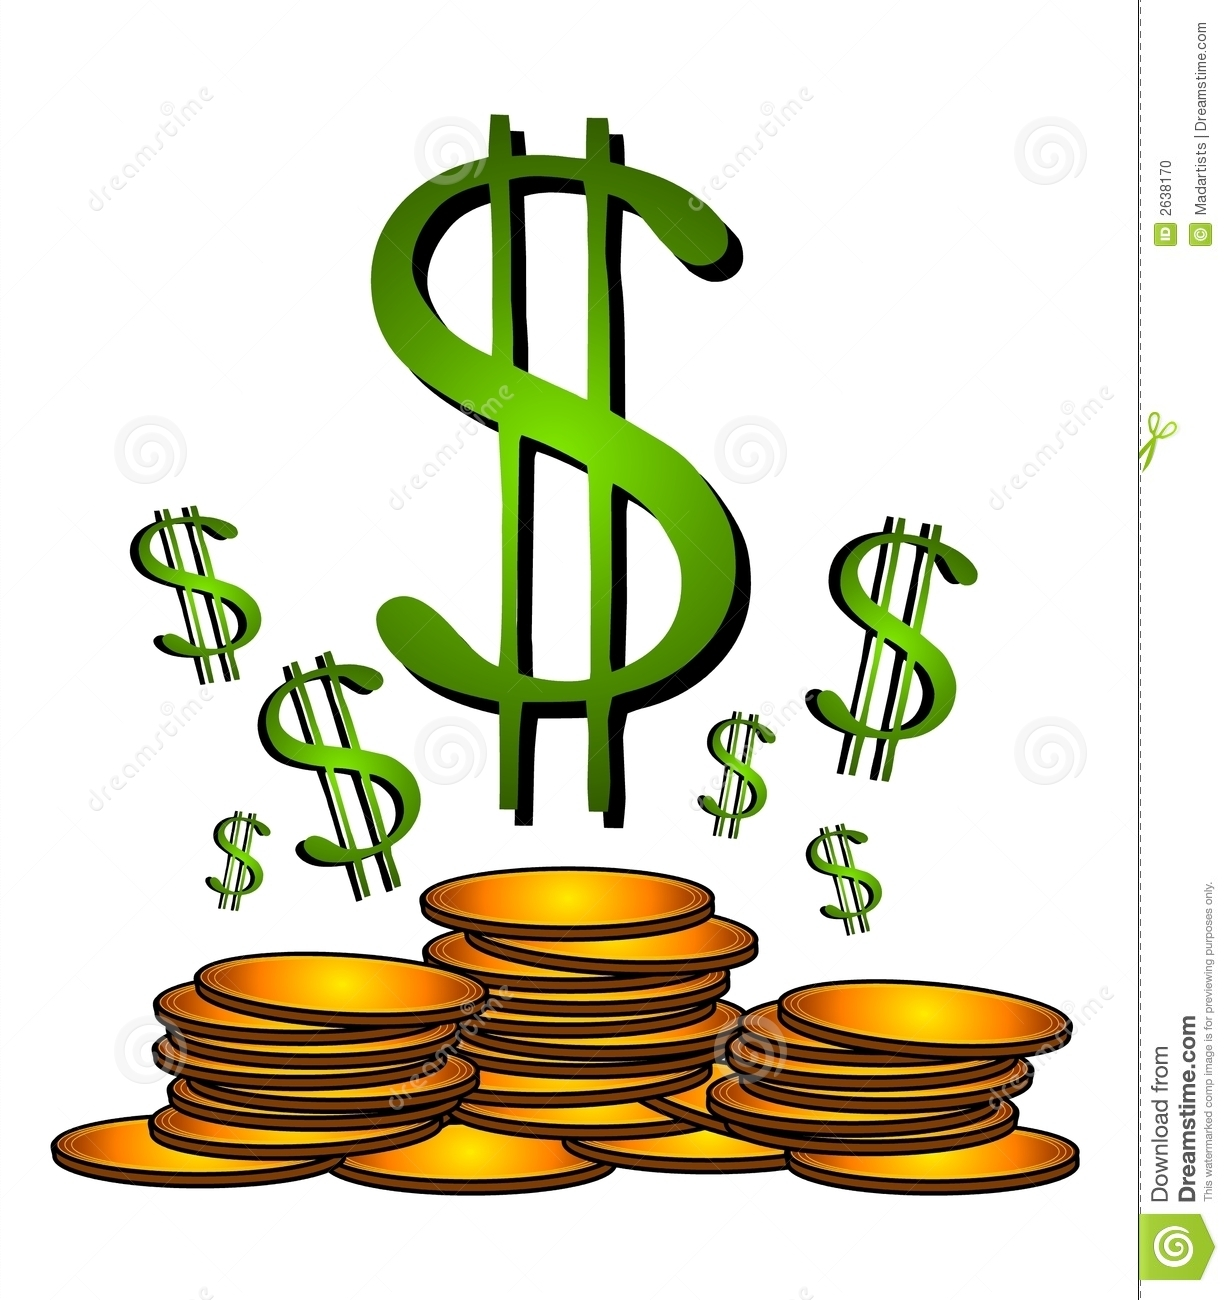 Dollar Clip Art. Money Sign .-Dollar Clip Art. Money Sign .-9